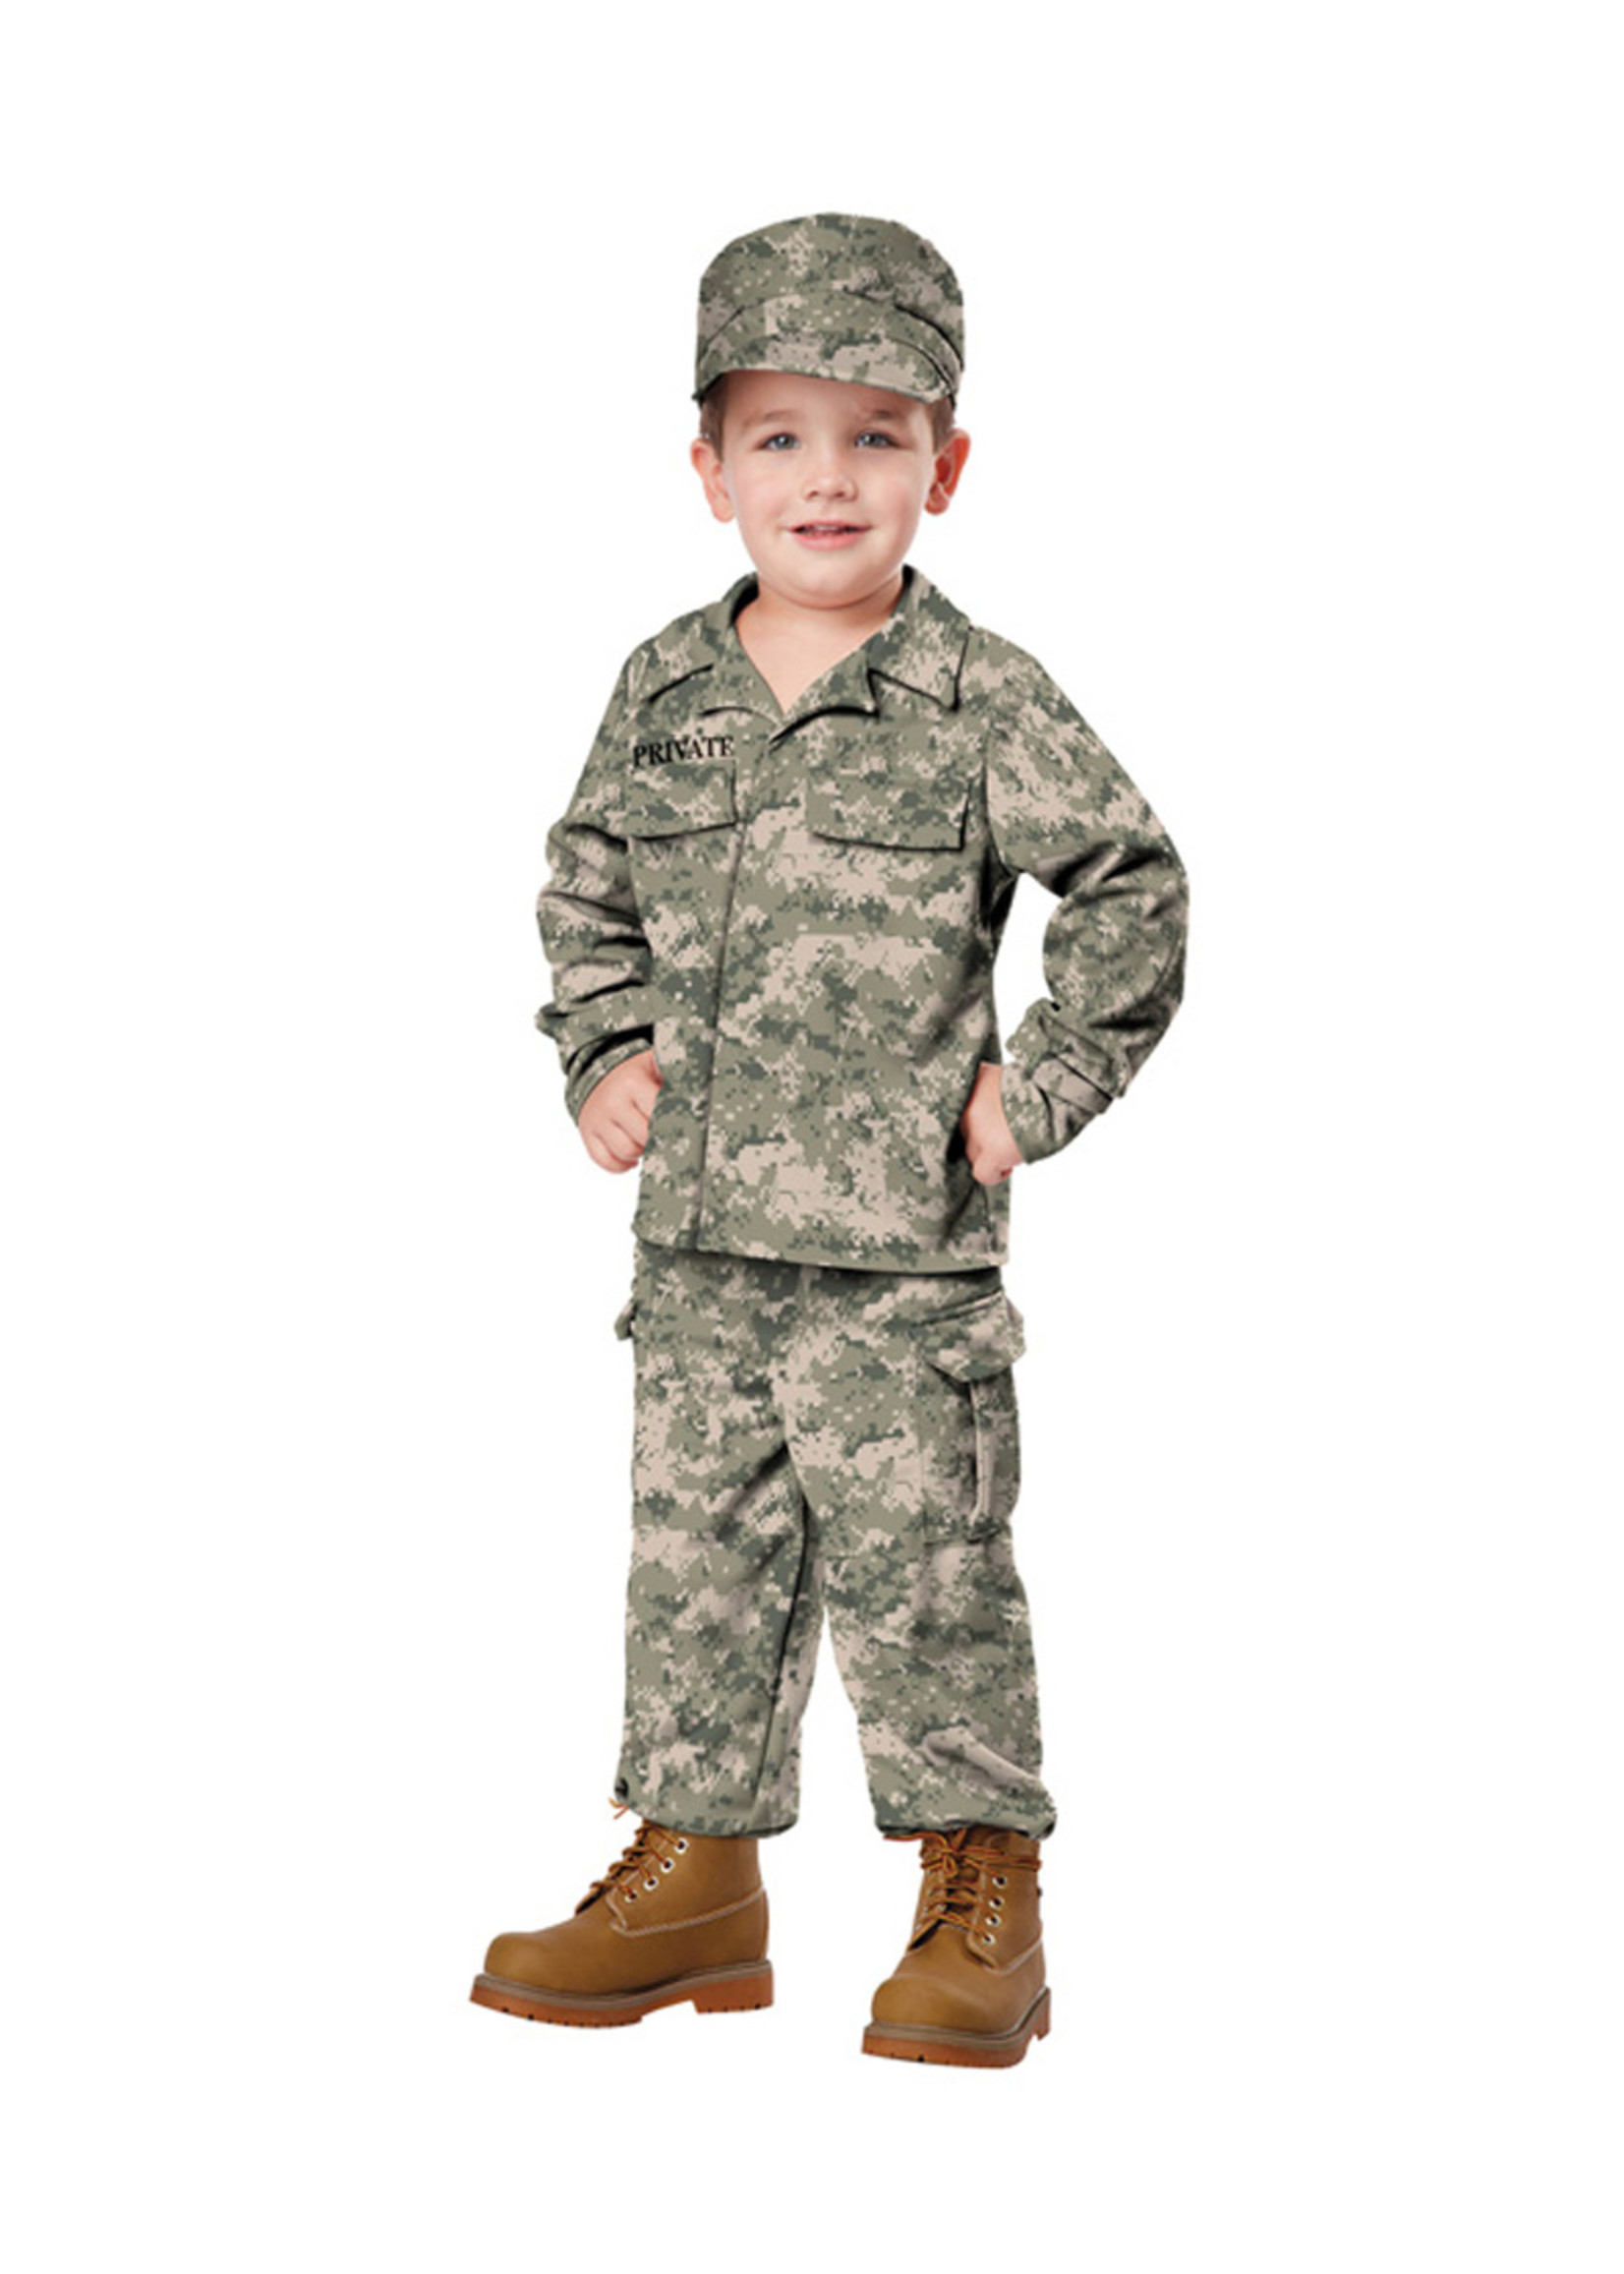 Soldier Costume - Toddler